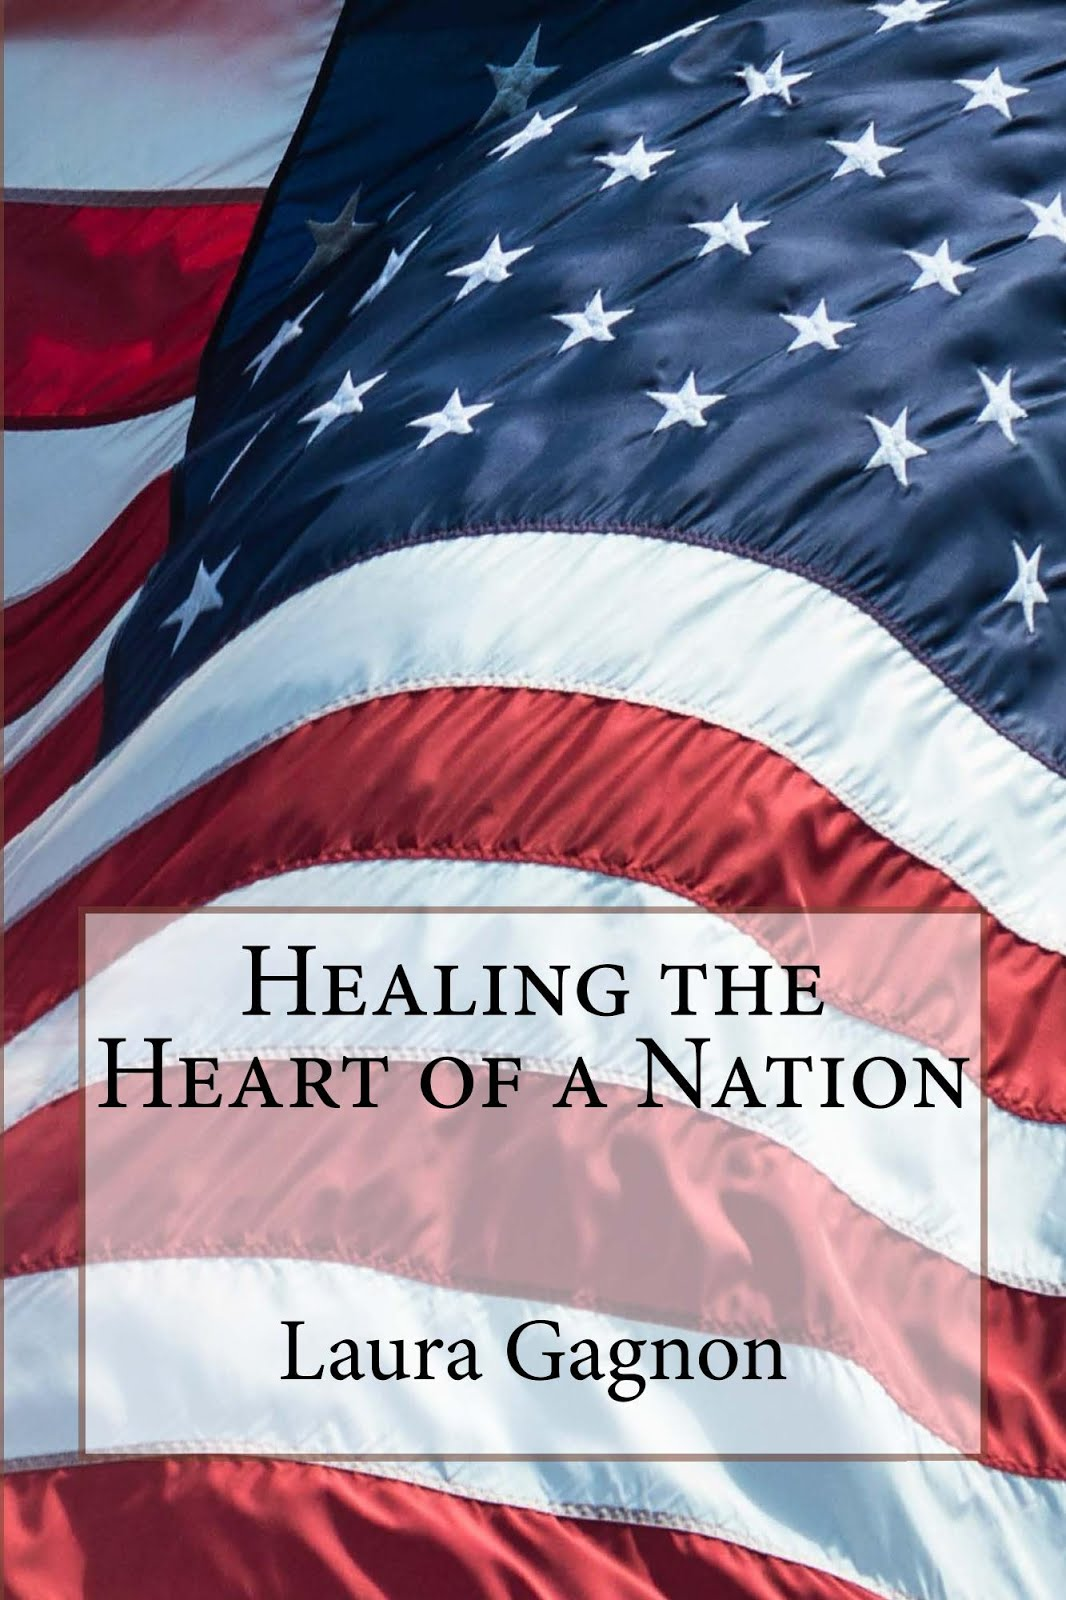 Prayers to heal core issues at the heart of our nation.